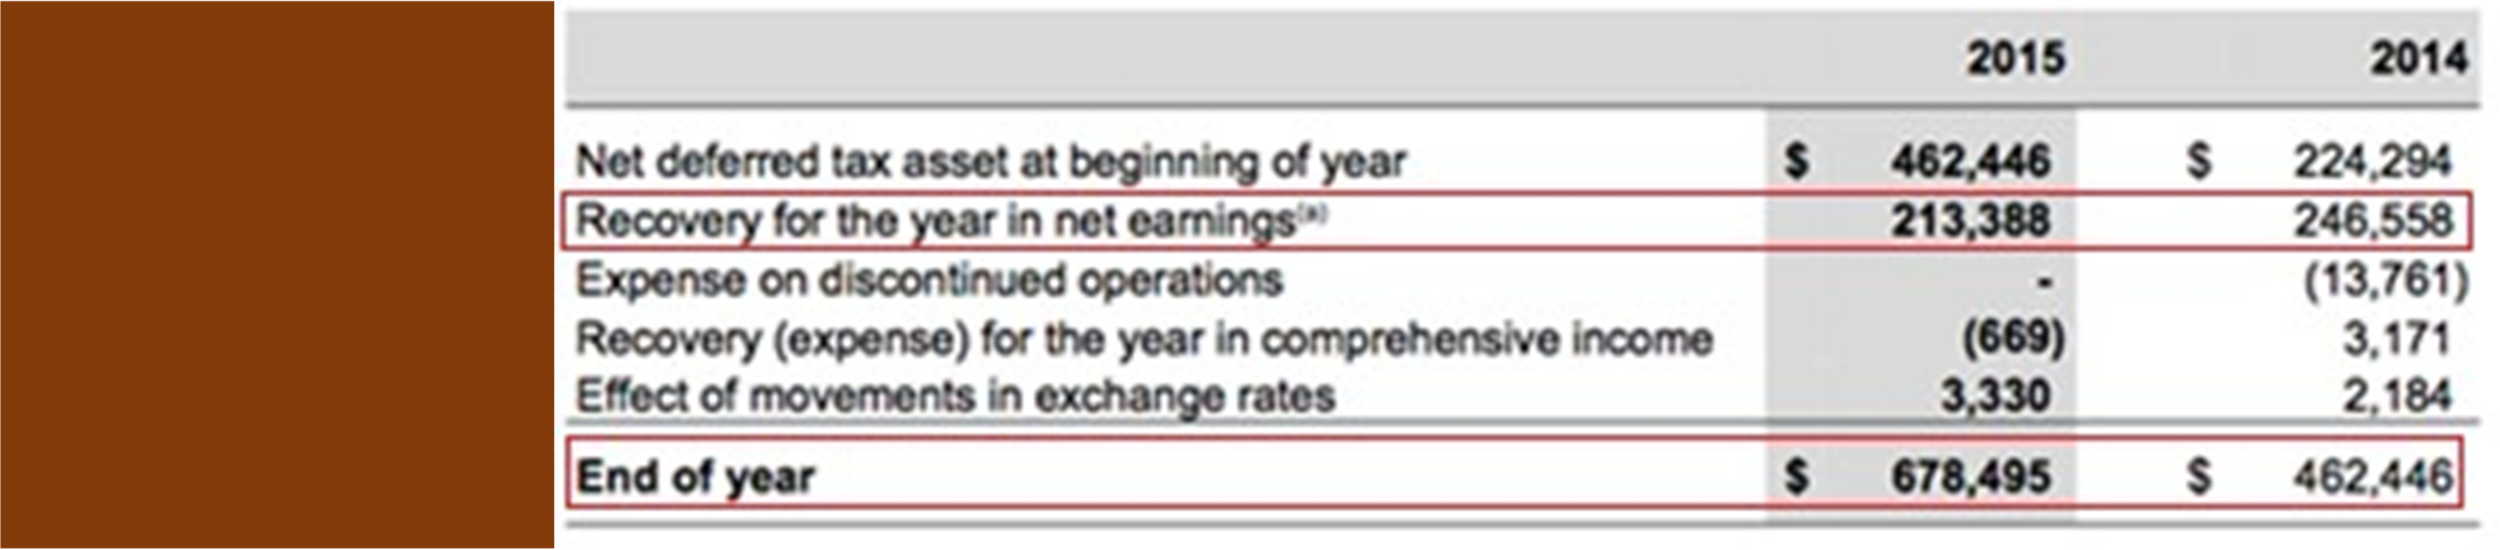 Table 2: Deferred tax calculation